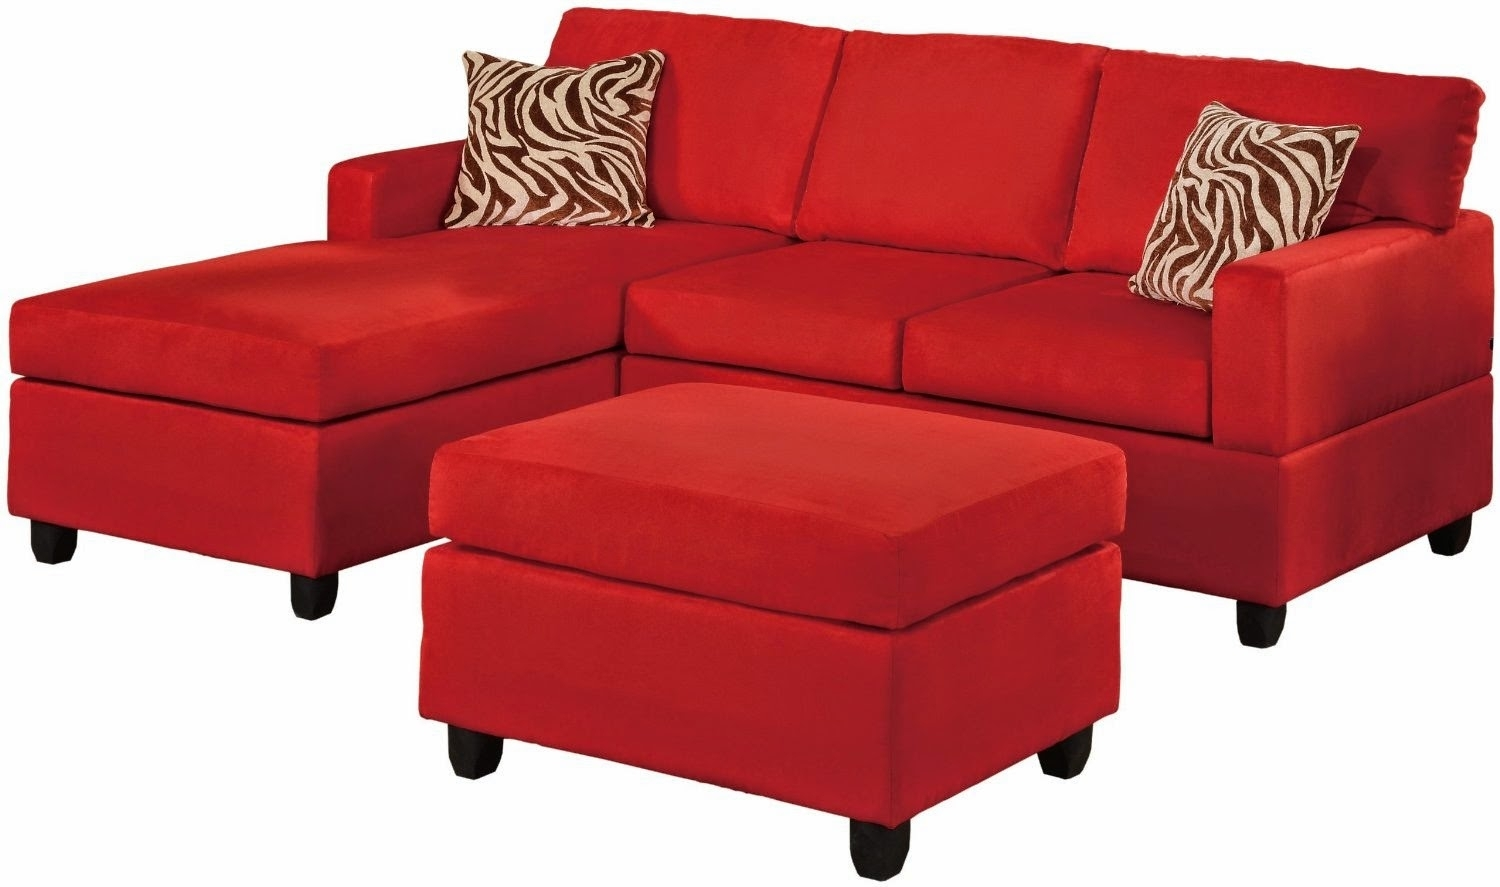 Red Sectional Couch Set Piece Fabric Printed Couches – Dma Homes | #7345 Throughout Red Sectional Sofas With Ottoman (View 9 of 15)